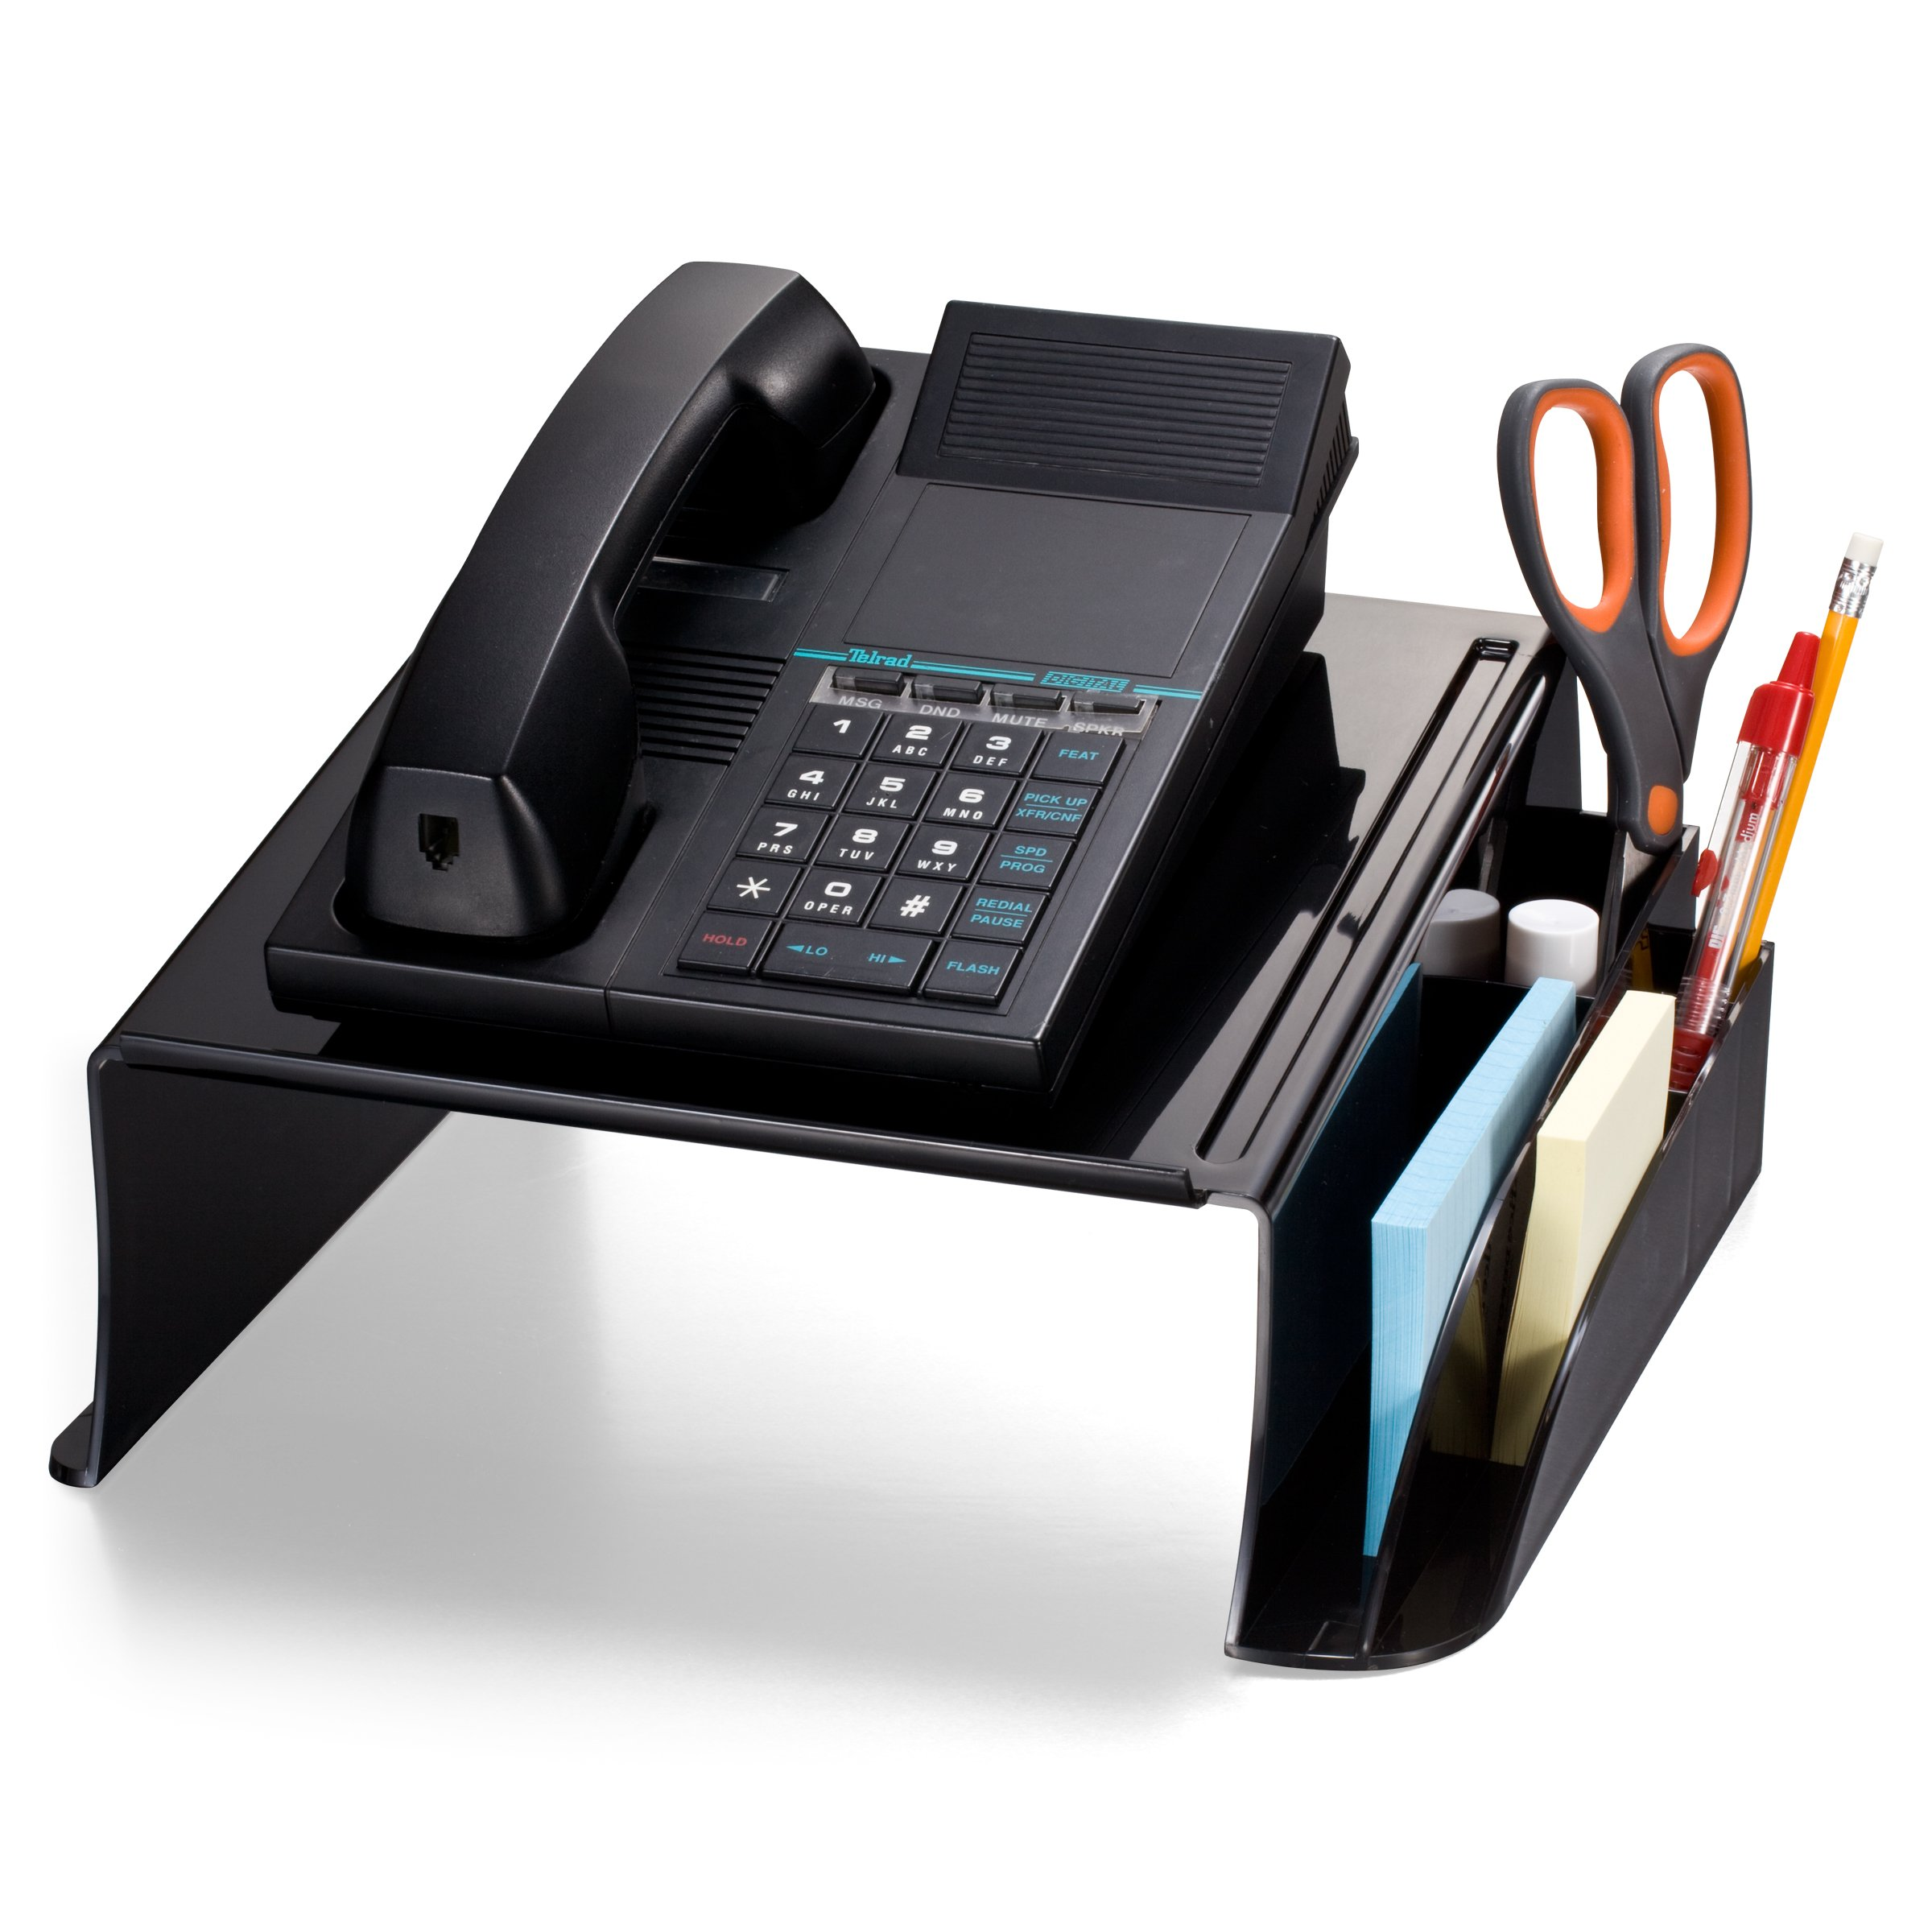 Officemate Telephone Stand, 12.5 x 10 .125 x 5.25 Inches, Black (21522) by Officemate